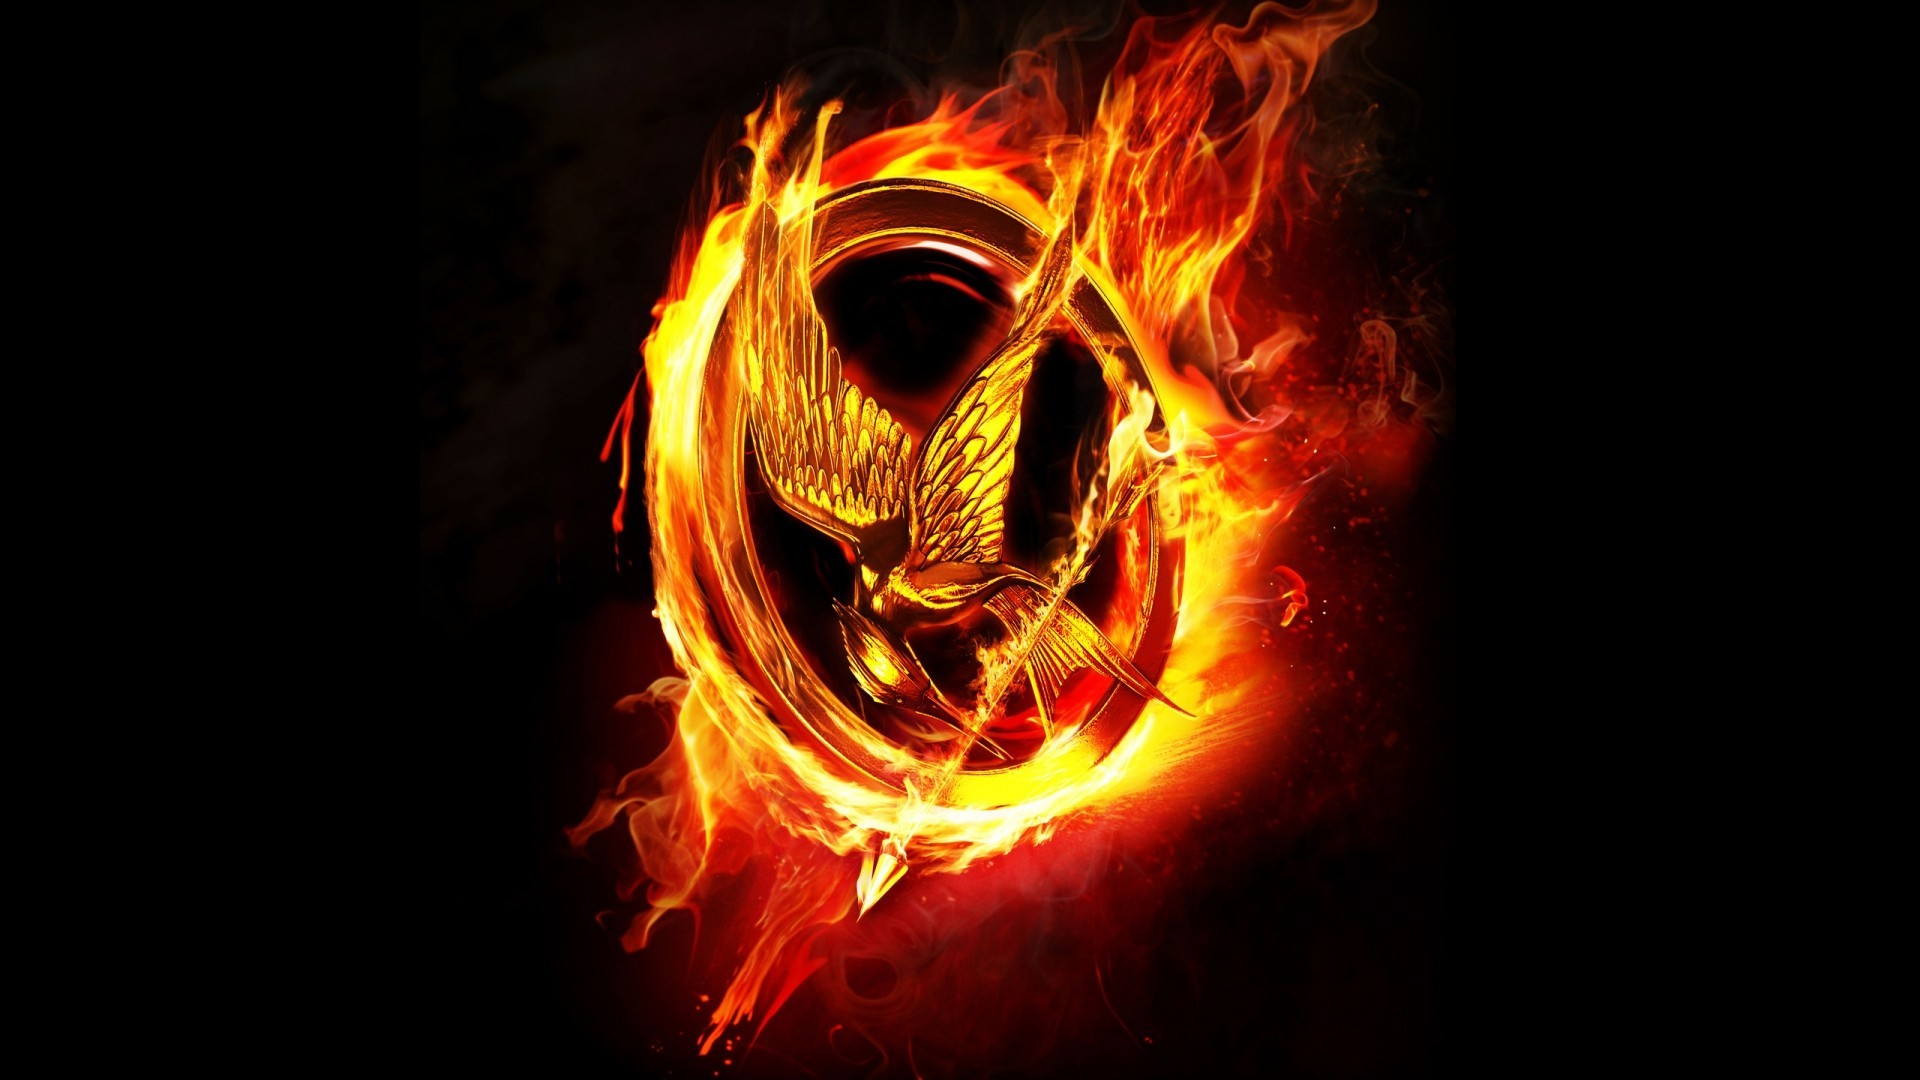 1920x1080 Related Wallpapers from USMC Wallpaper. mockingjay